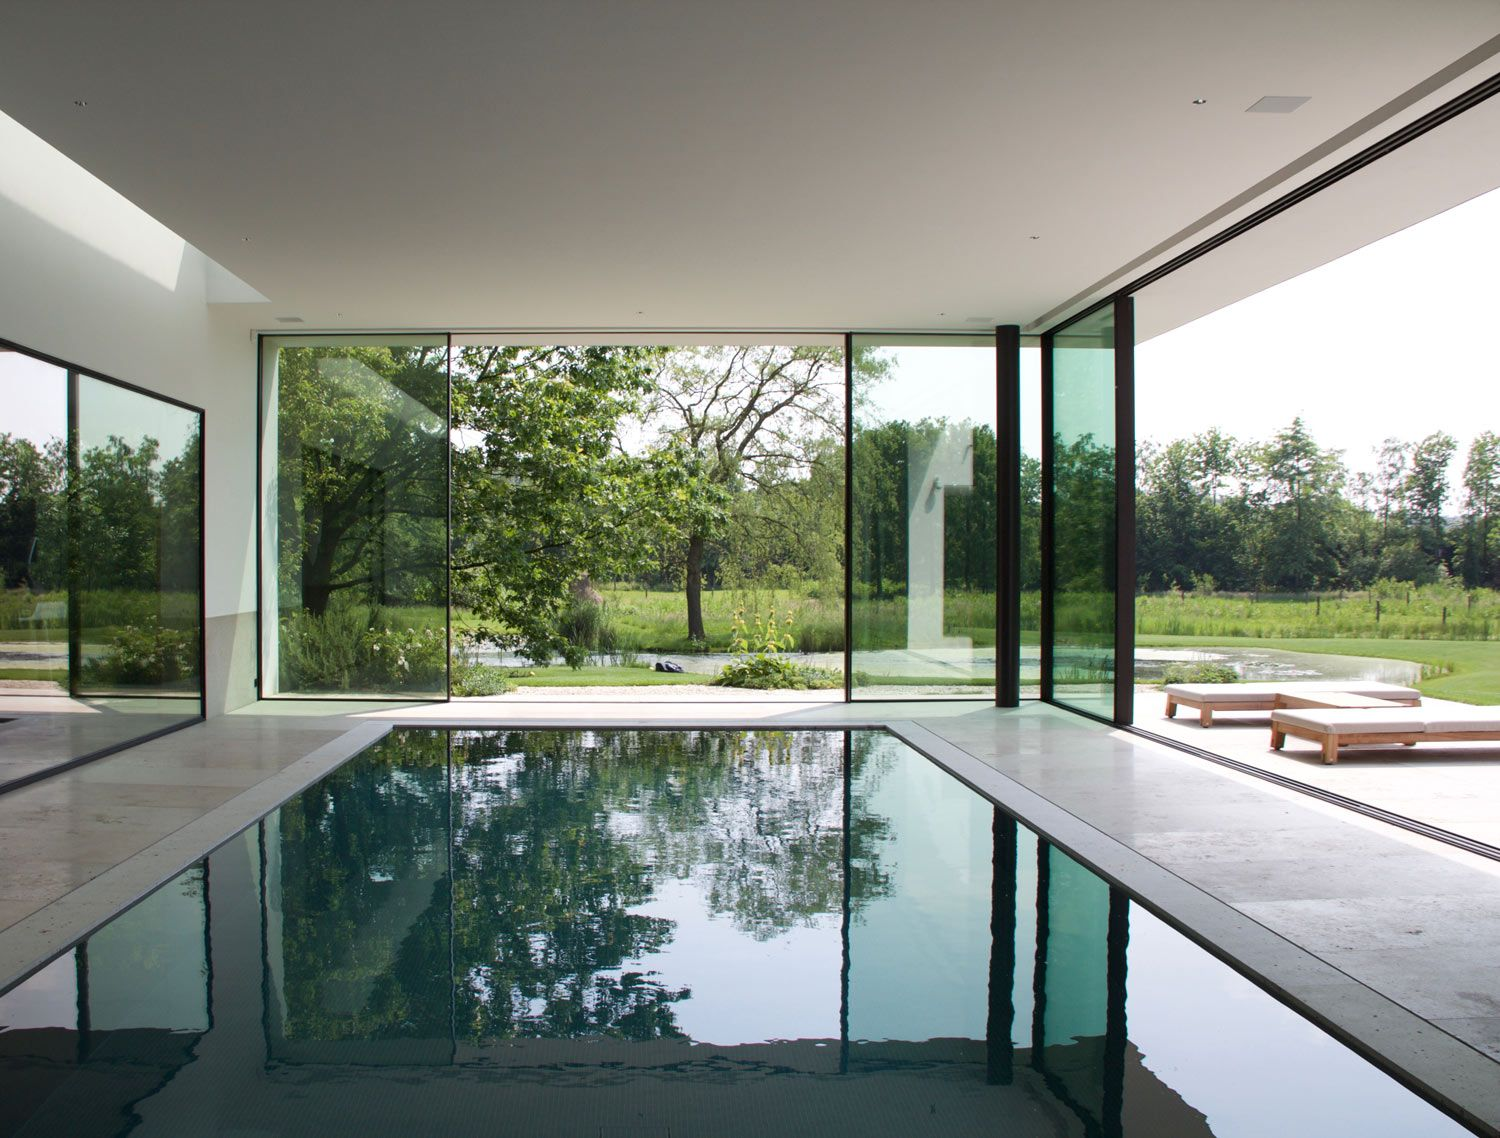 Indoor pool villa  Indoor pool - villa in Ghent, Belgium by Dirk Heveraet architect ...